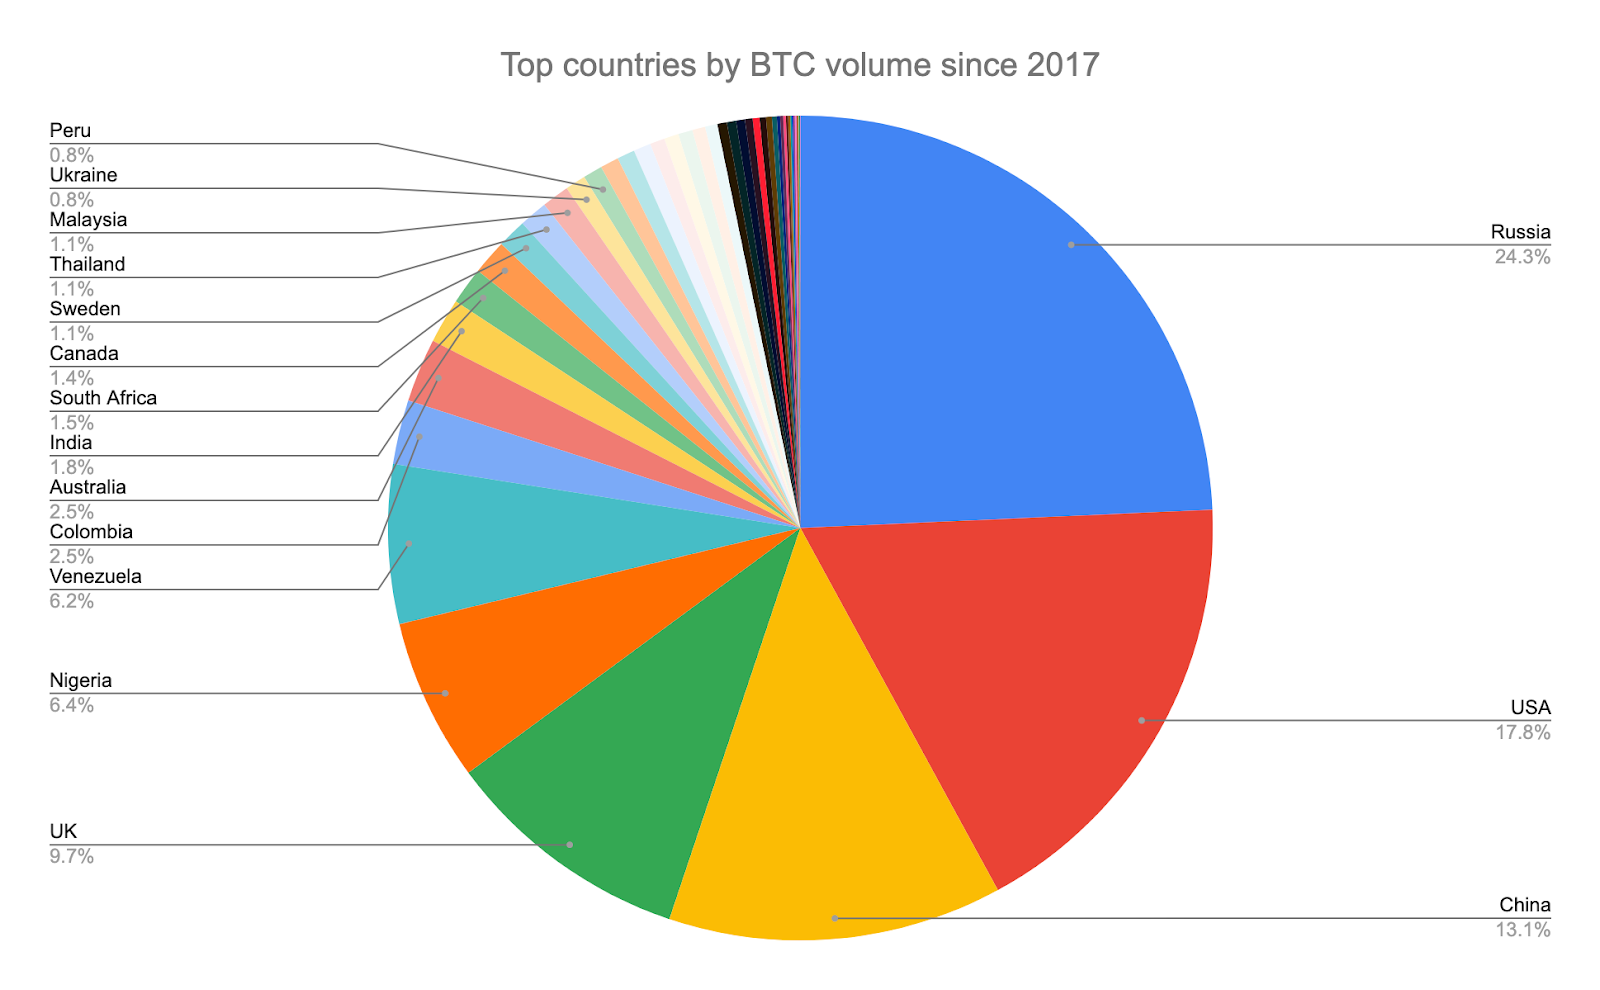 Top countries by BTC volume since 2017